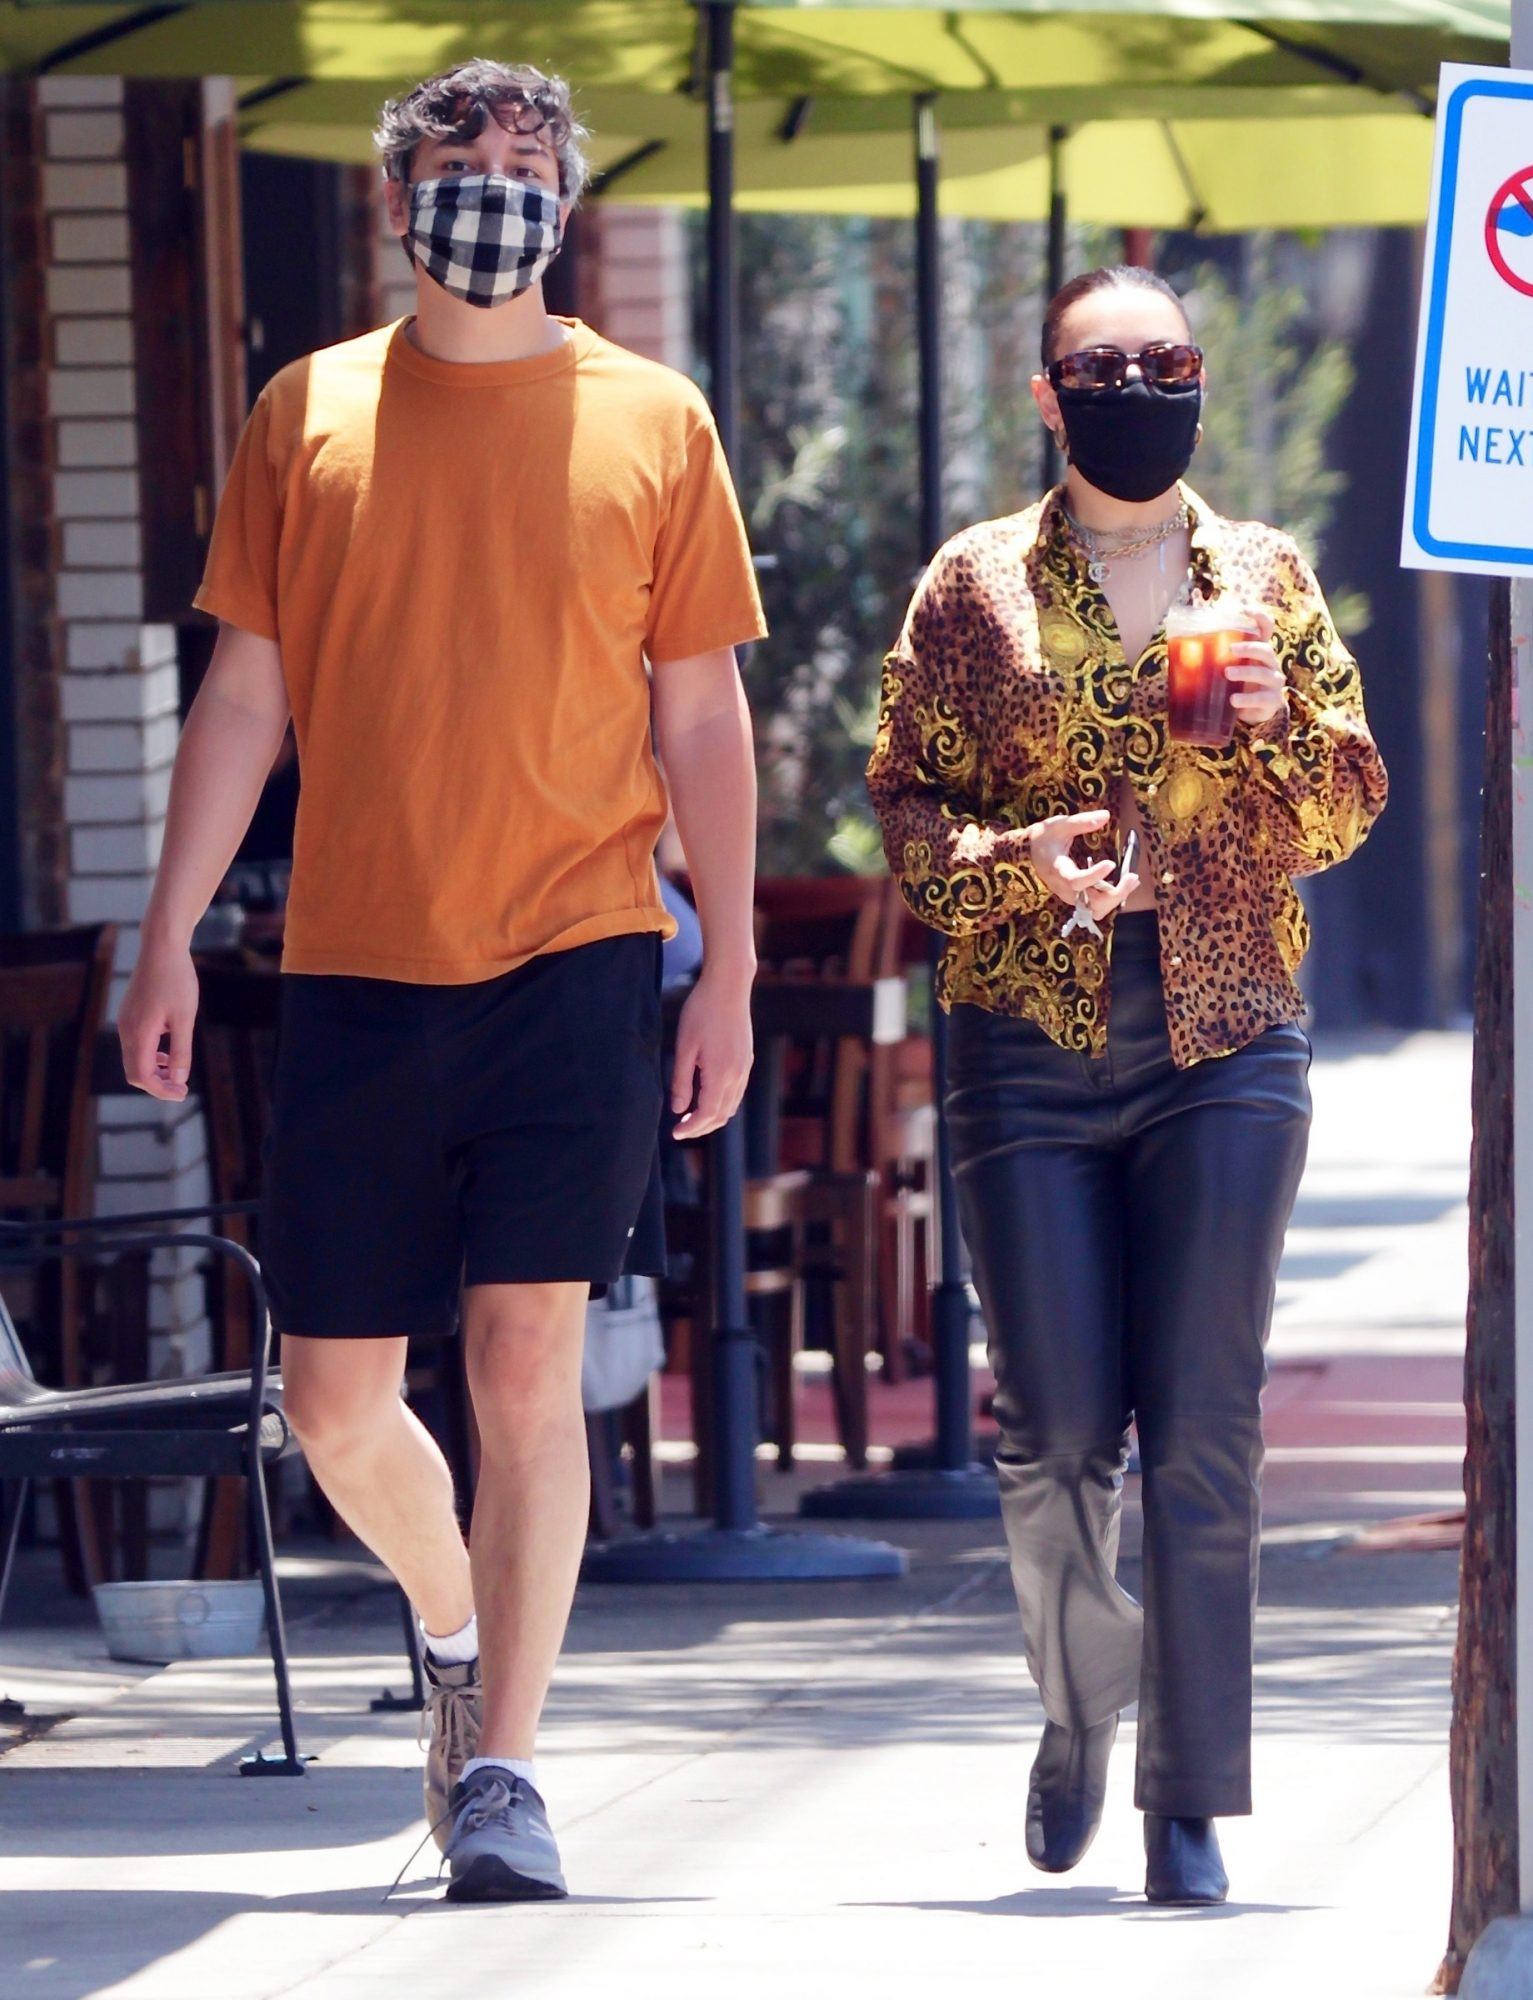 Singer Charlie XCX steps out with her boyfriend to grab an iced coffee in Los Feliz